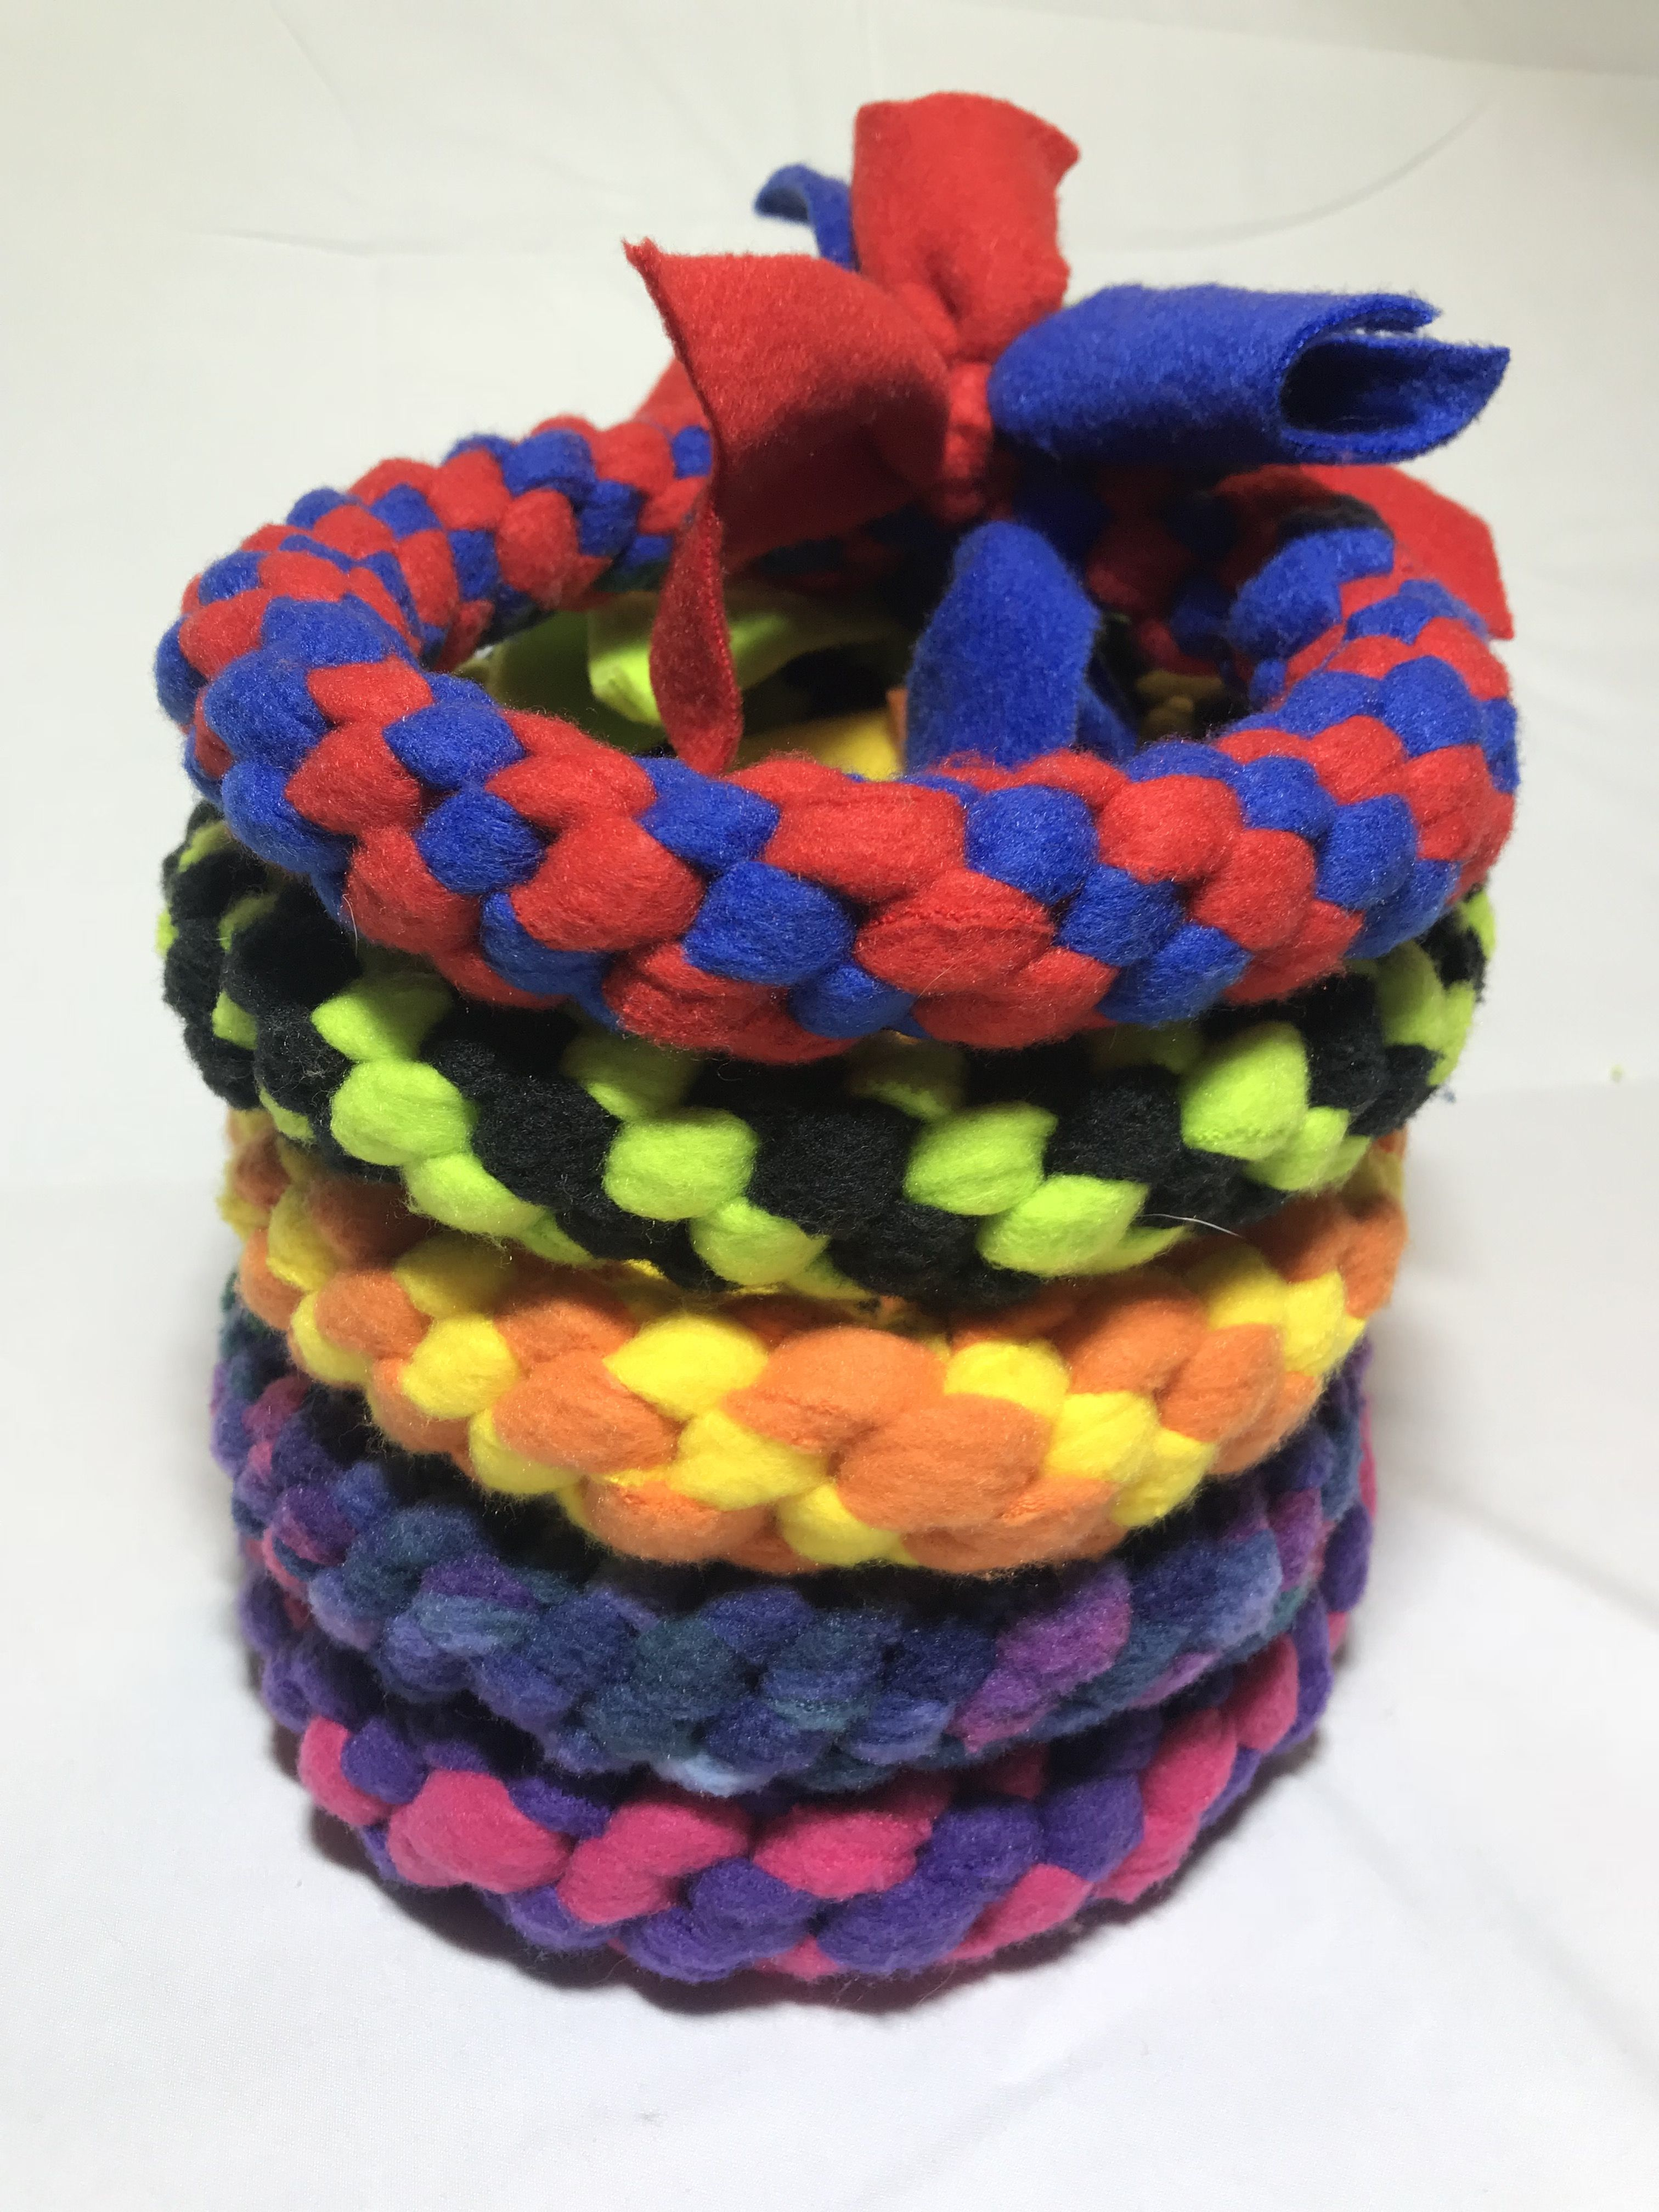 Fleece Ring Dog Toys They Make A Great Present For Your Dog And